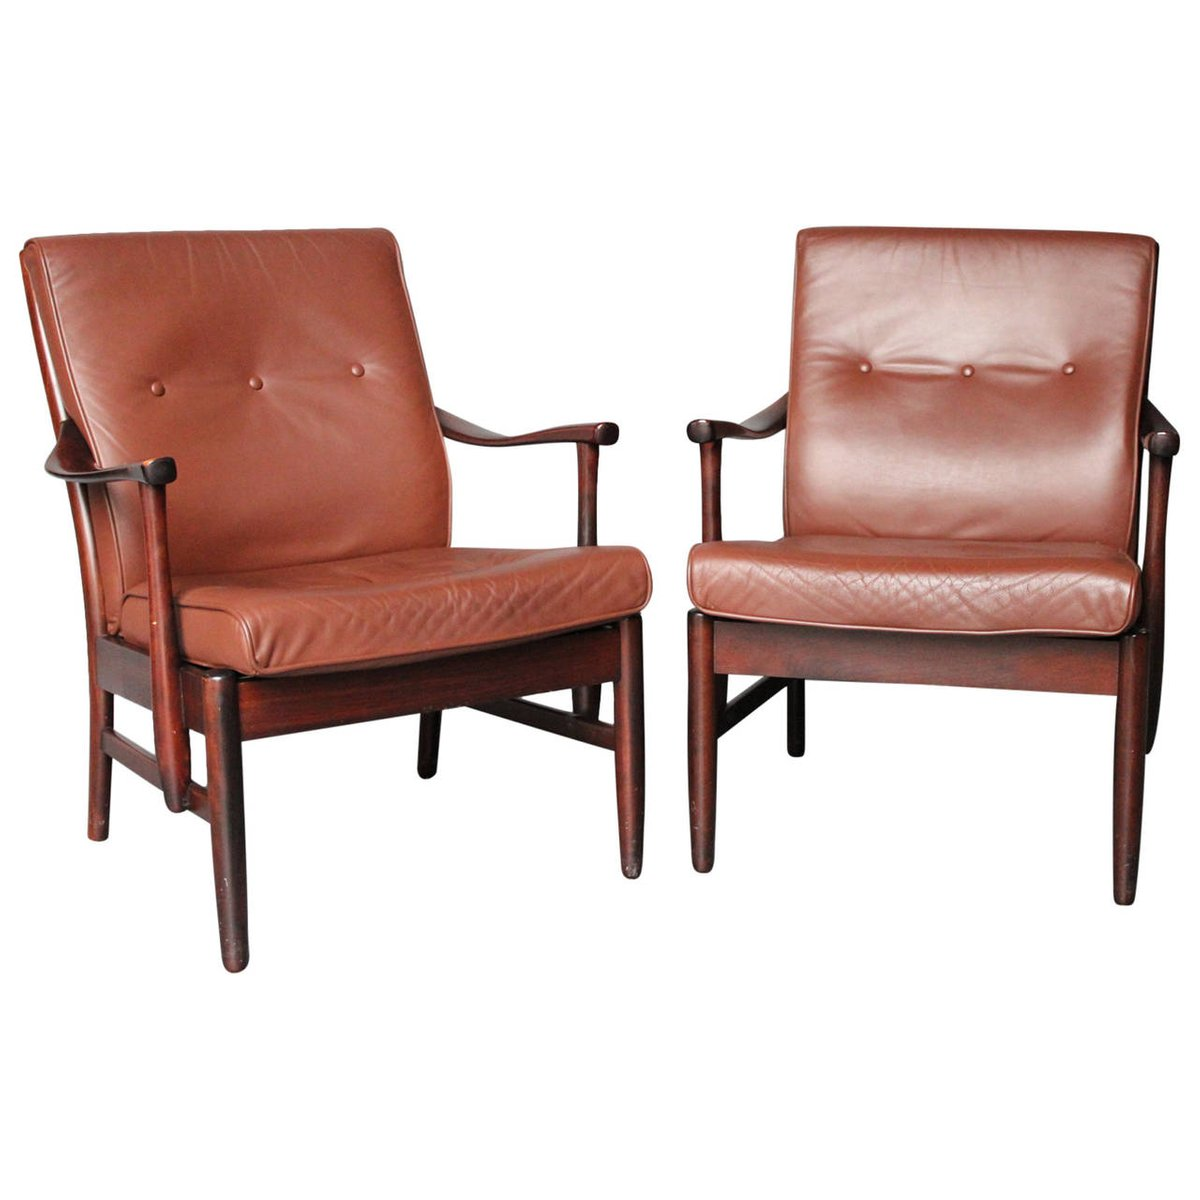 arm chairs amazon.ca patio chair covers polished mahogany armchairs 1960s set of 2 for sale at